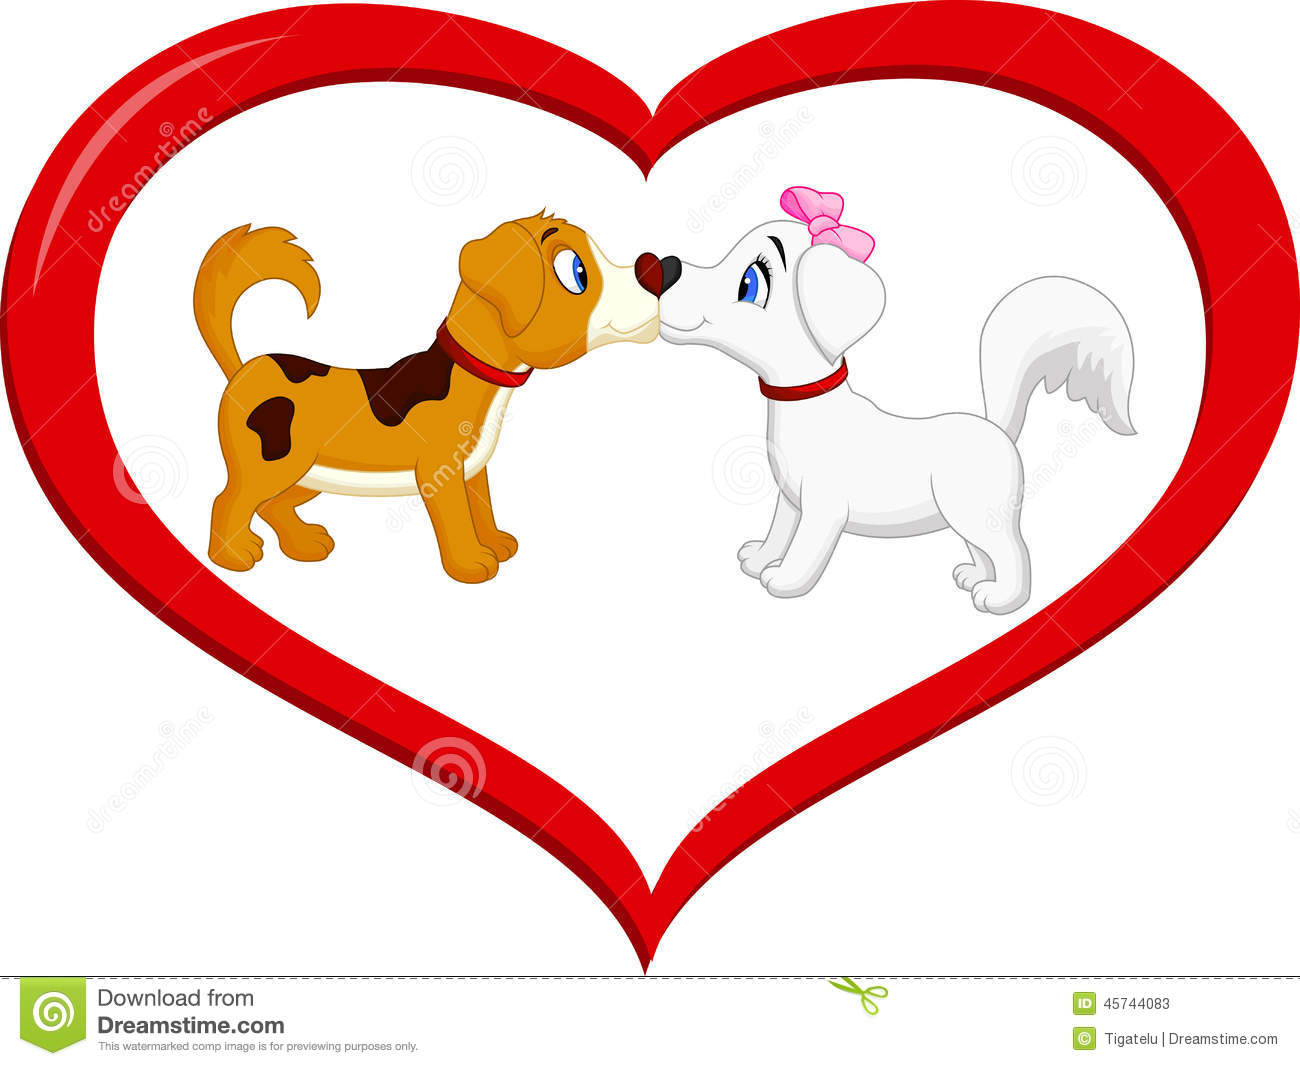 Cartoon Characters Kissing Each Other : Cute cartoon dog kissing each other stock vector image